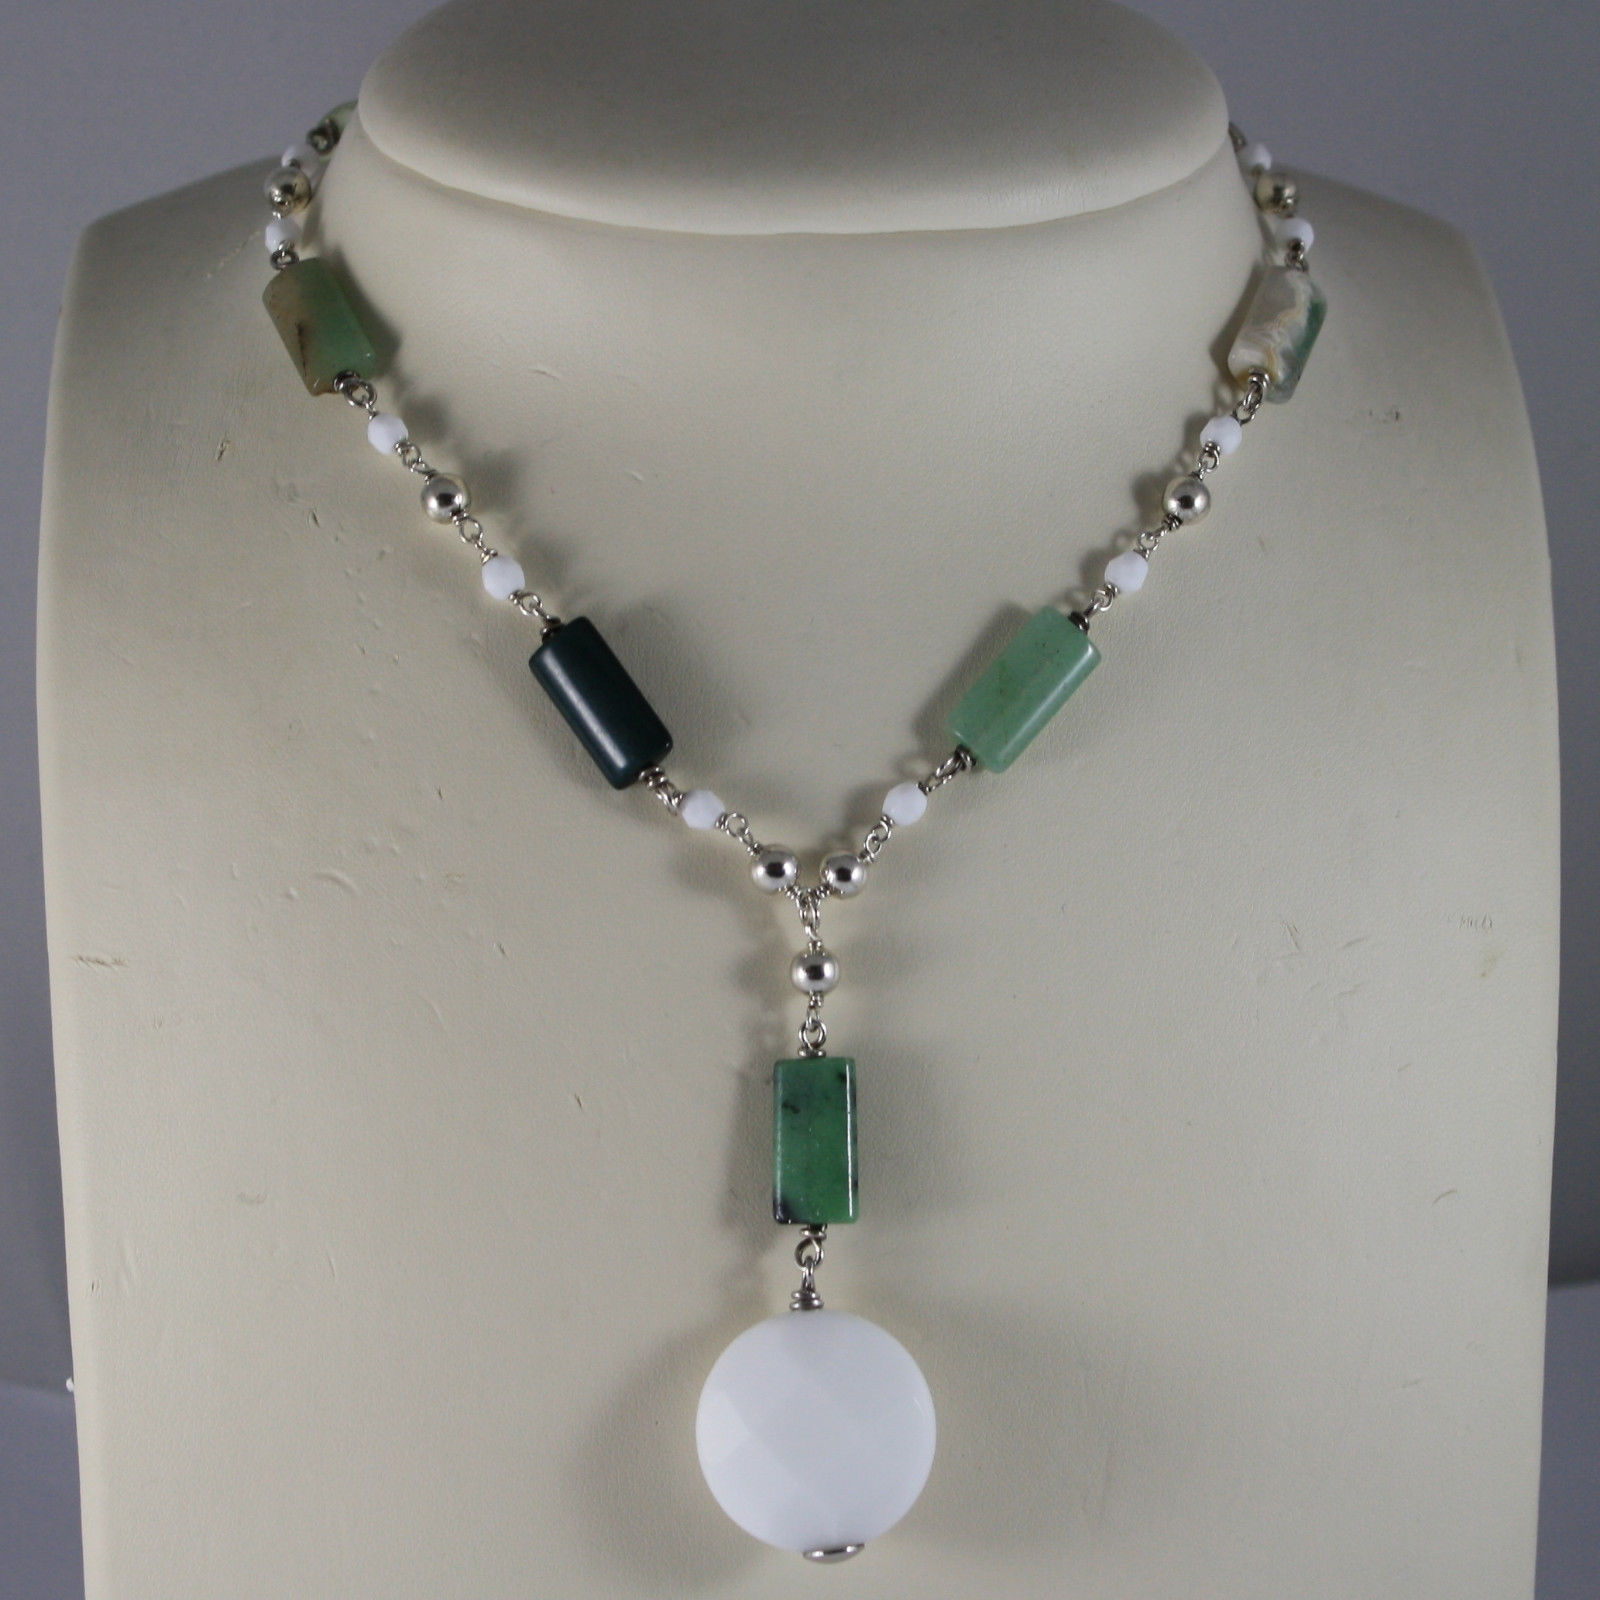 .925 RHODIUM SILVER NECKLACE WITH WHITE AGATE AND GREEN QUARTZ